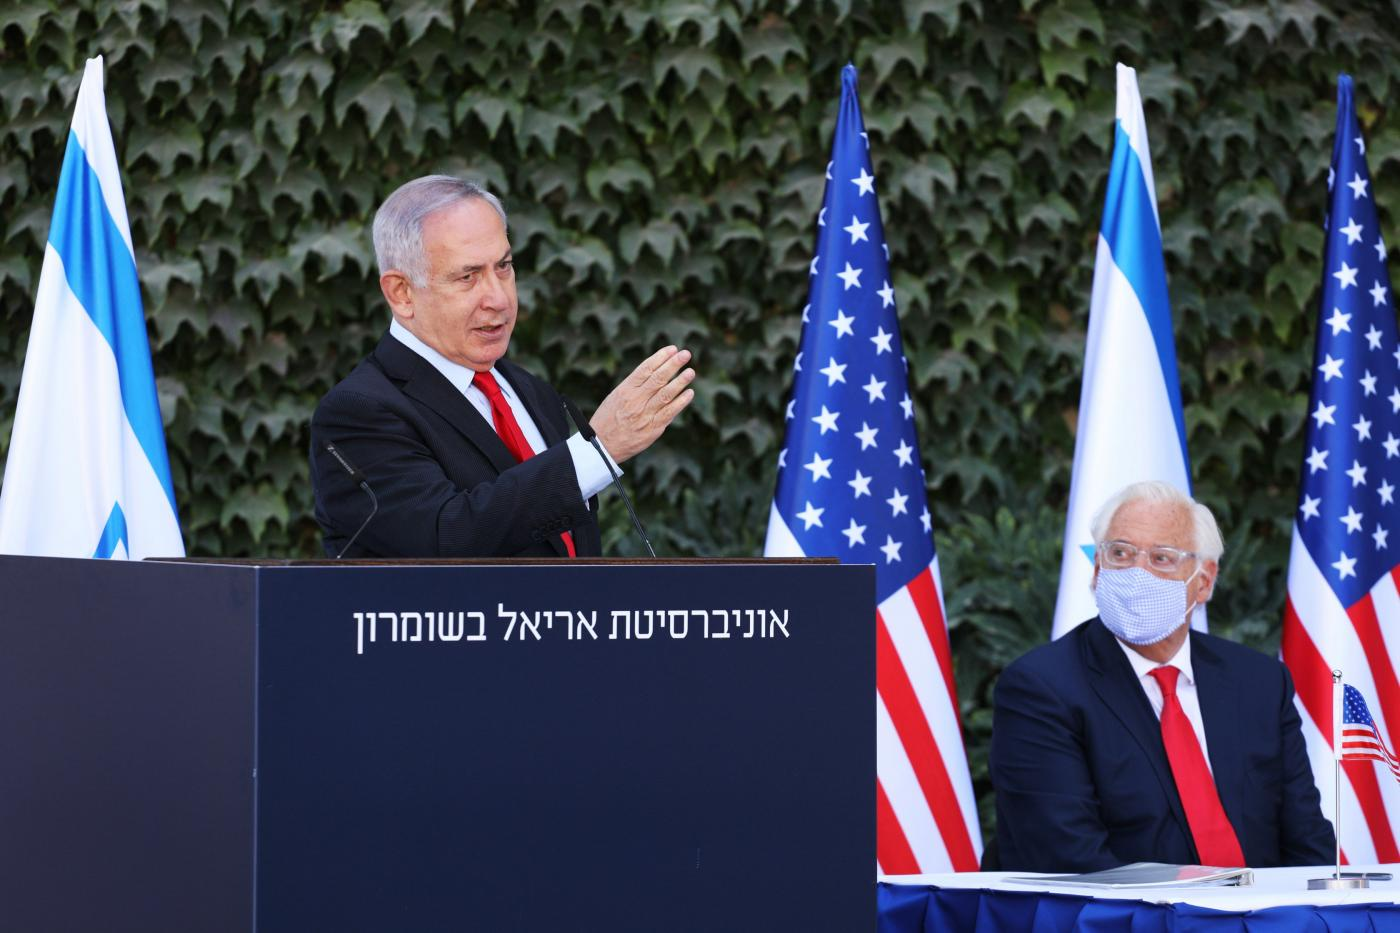 U.S. lifts funding ban on Israeli research in West Bank, Golan